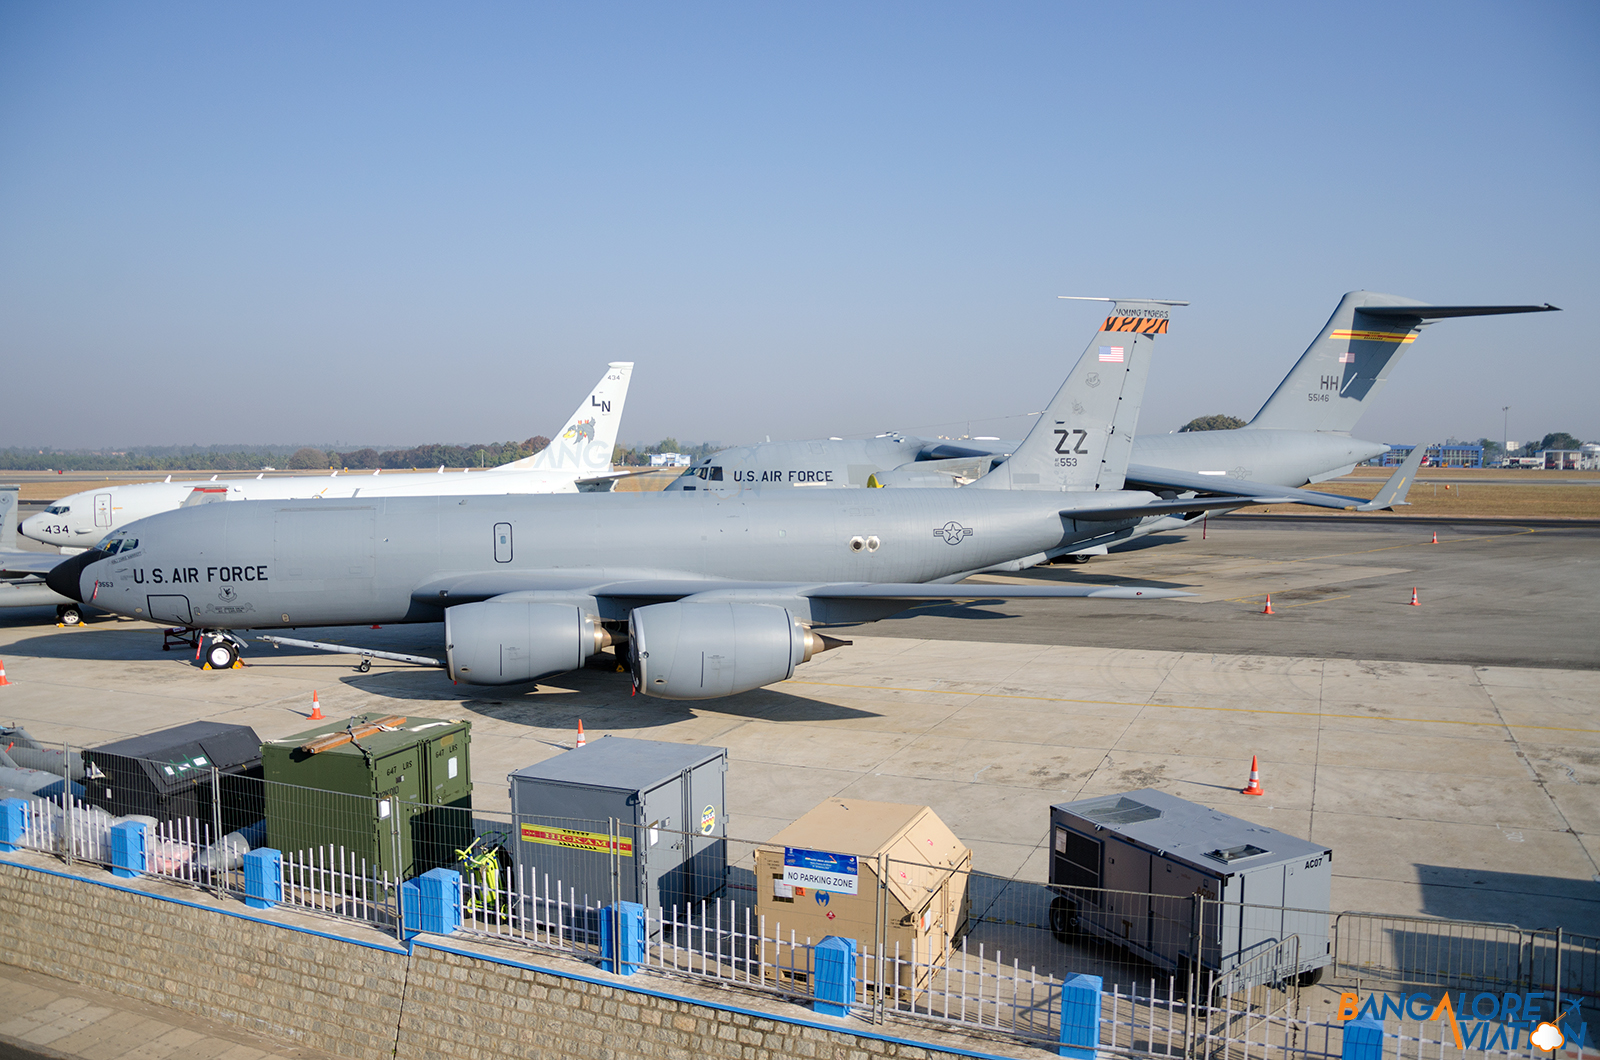 aero a photo essay bangalore aviation the boeing kc 135r which accompanied the f 16s non stop from